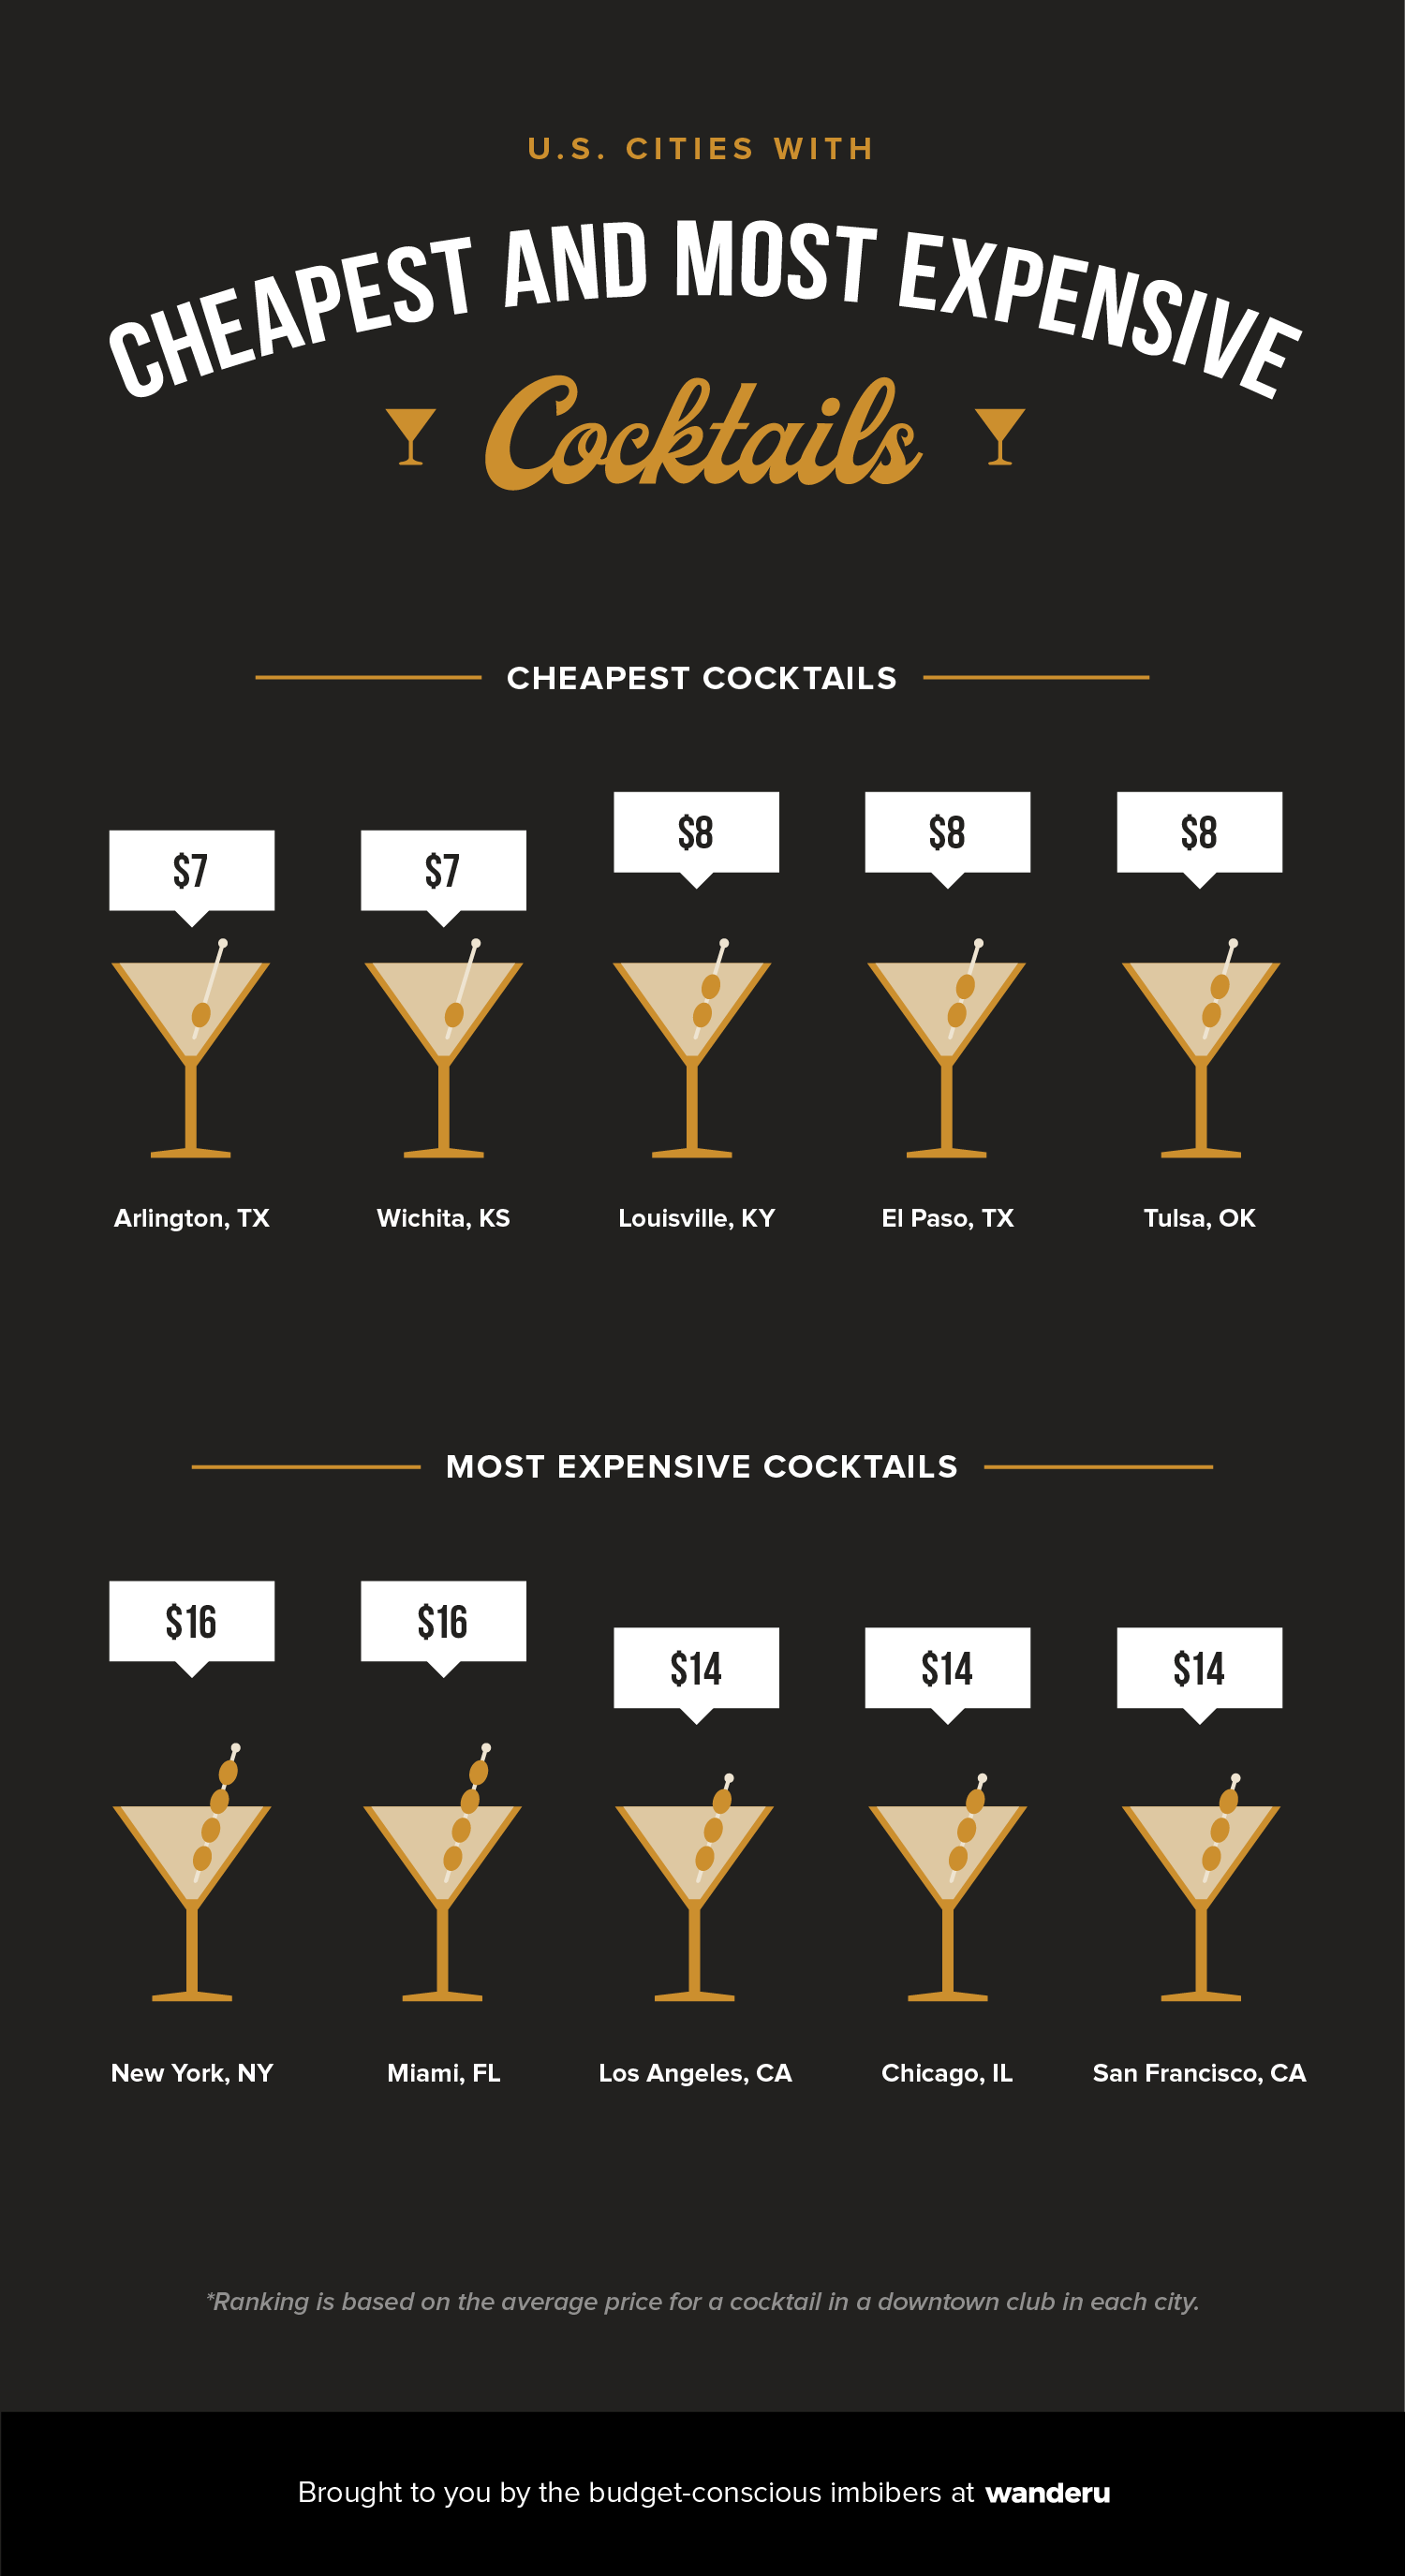 Infographic depicts the top 5 cheapest and top 5 most expensive cities in which to buy a cocktail.